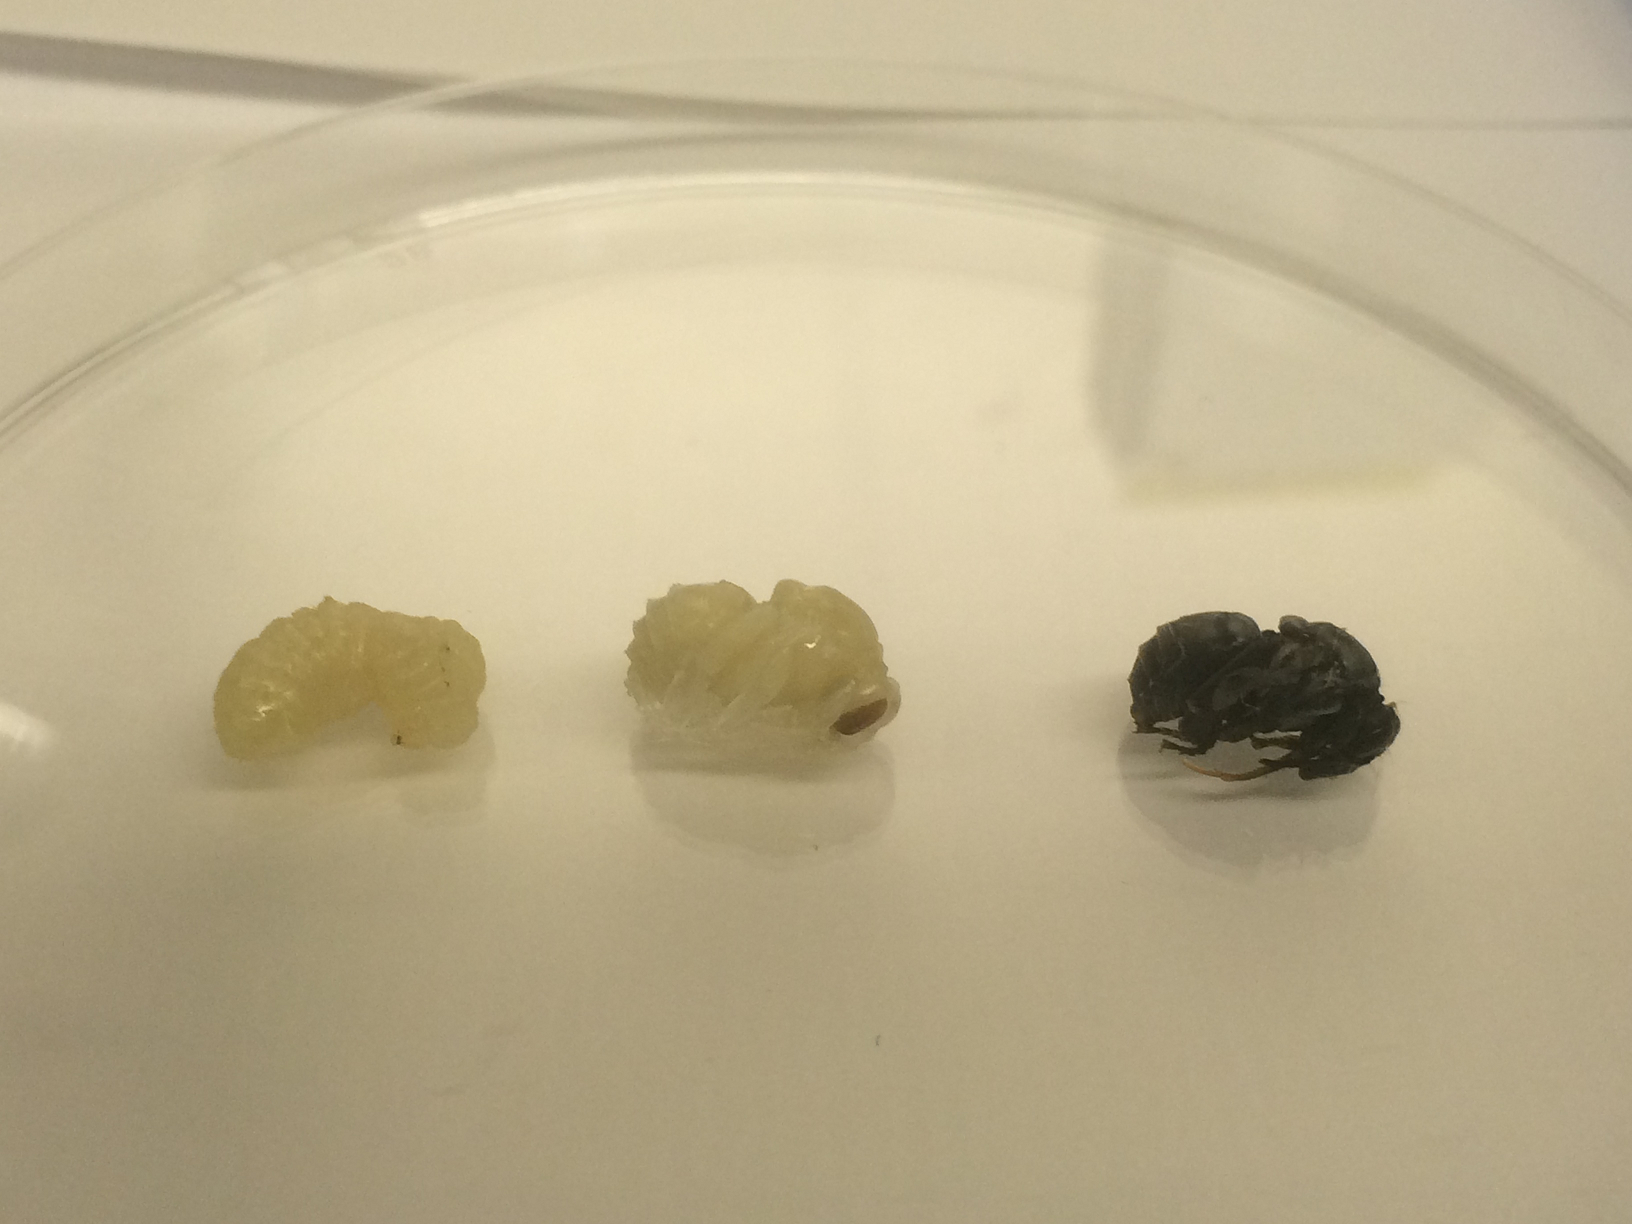 Larva, pupa and near-adult Bombus impatiens